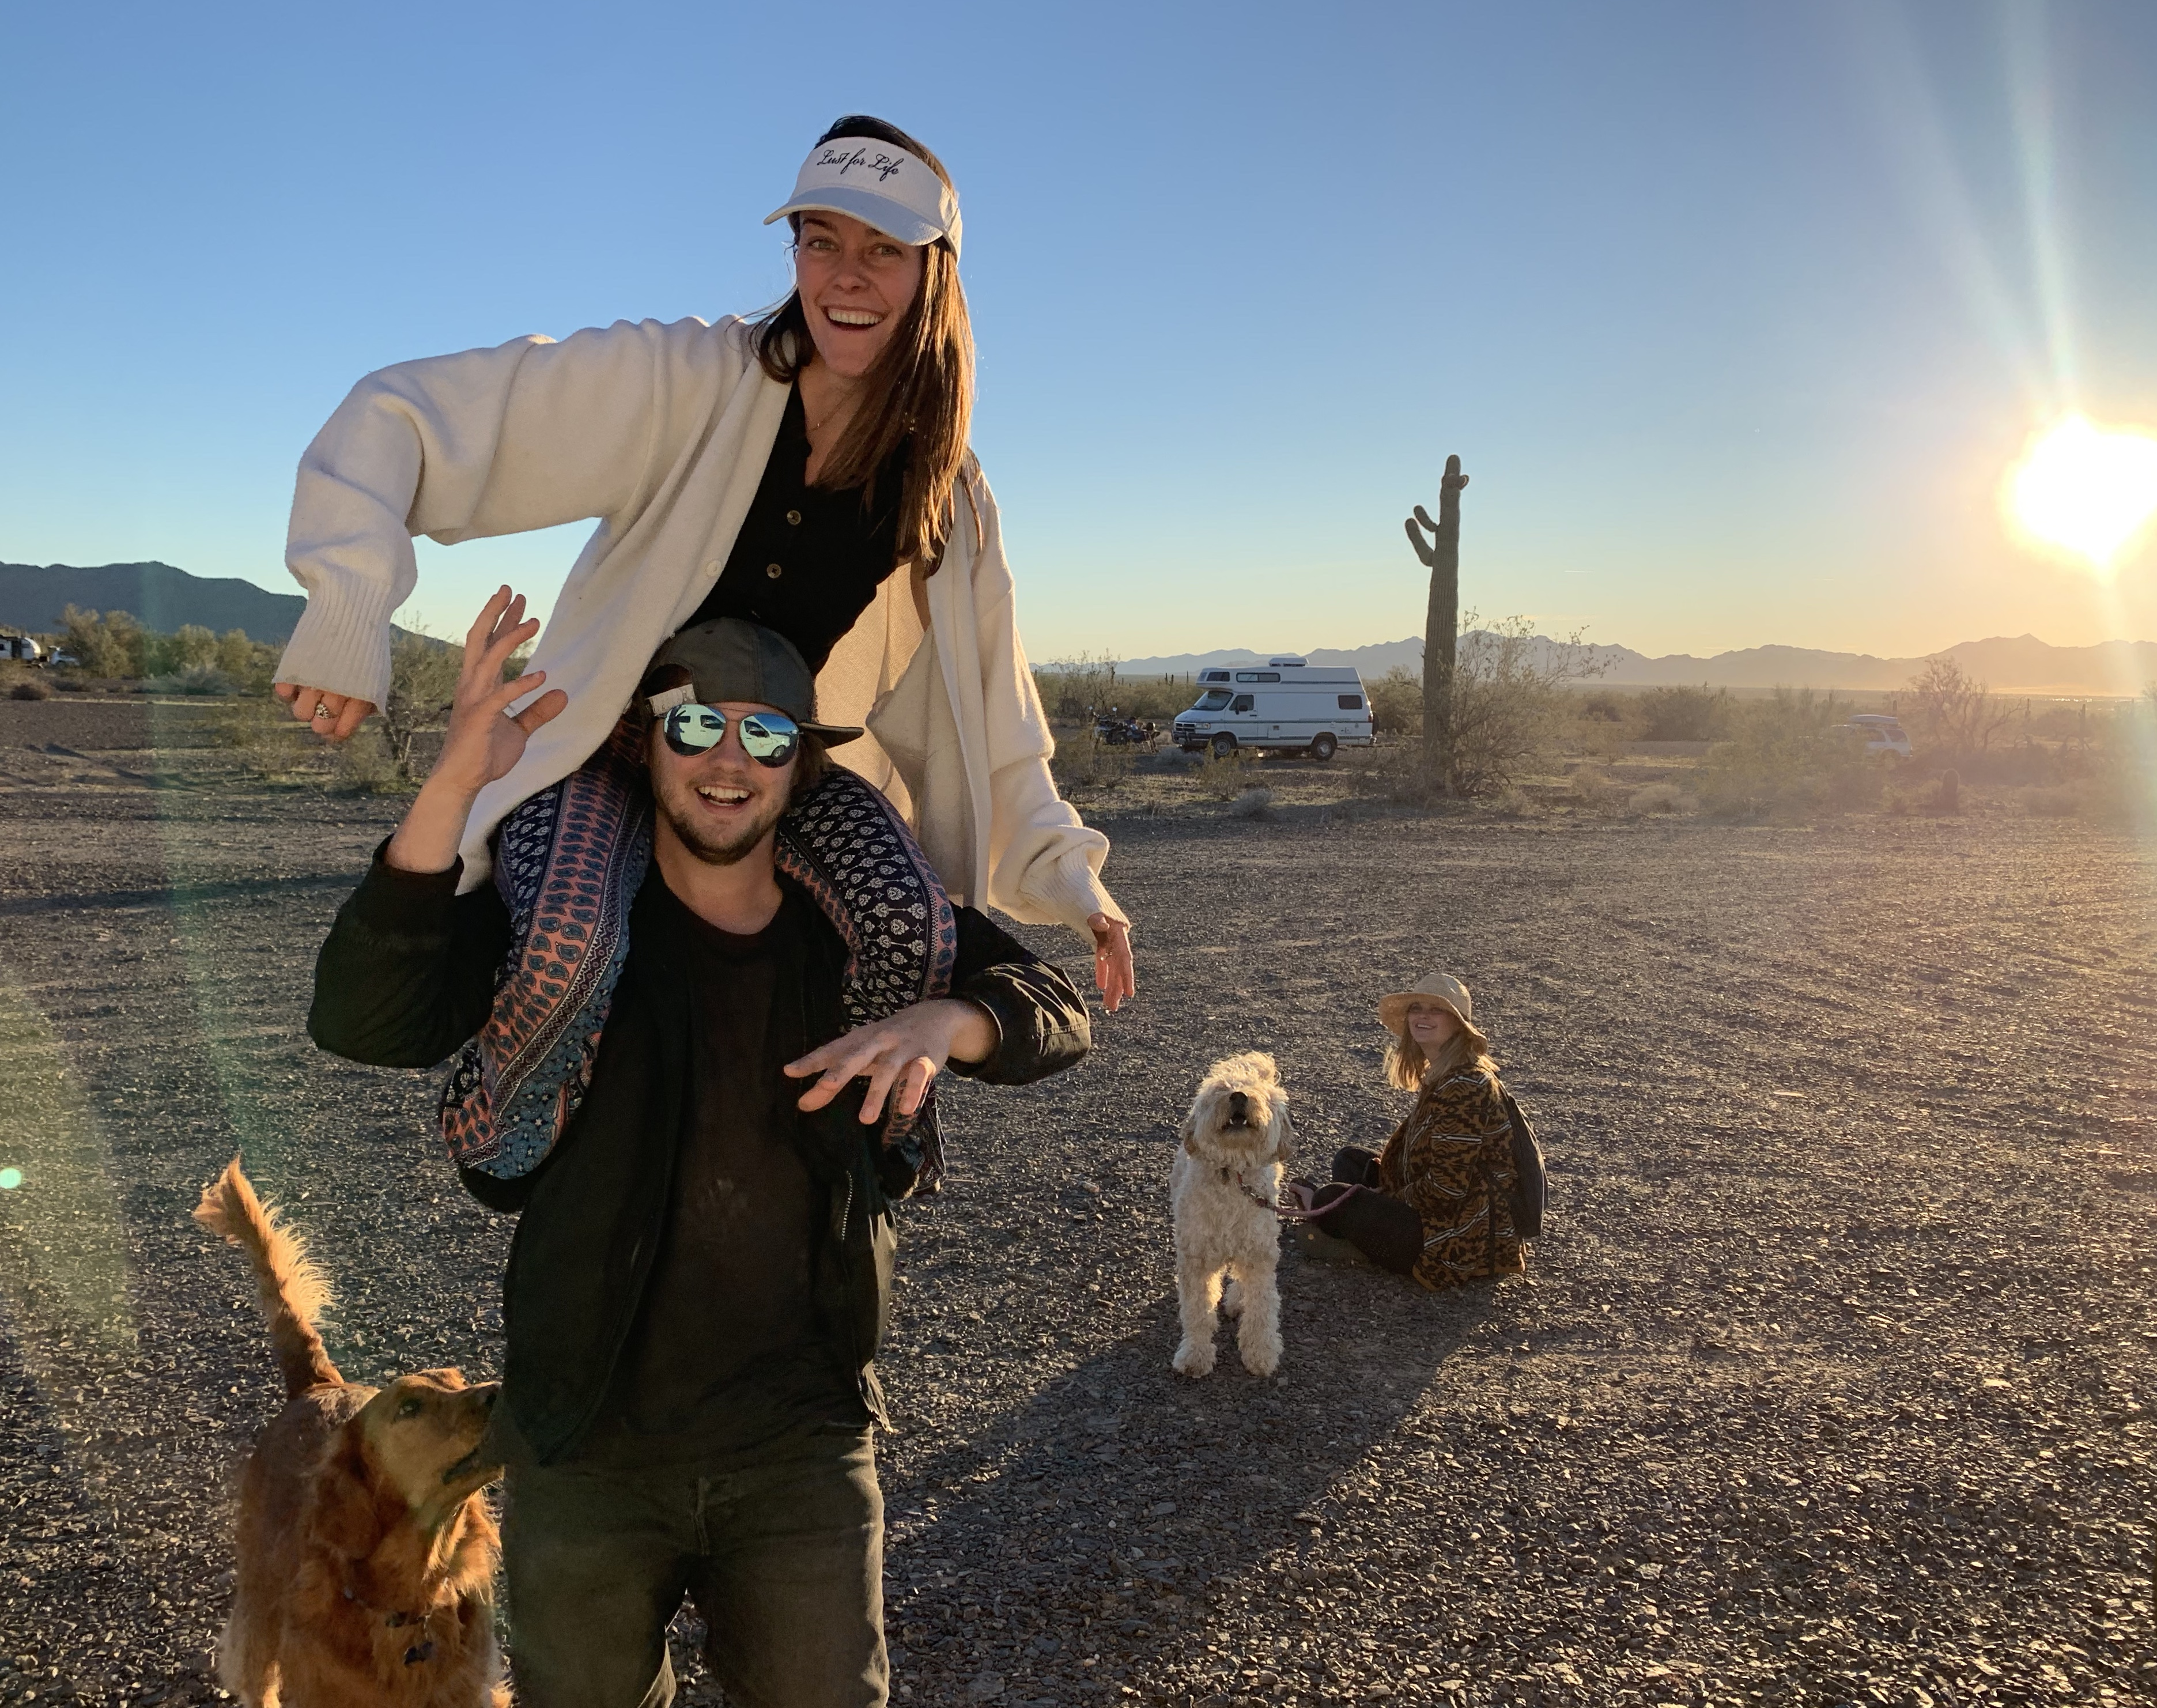 vanlife gathering friends with dogs desert sunset